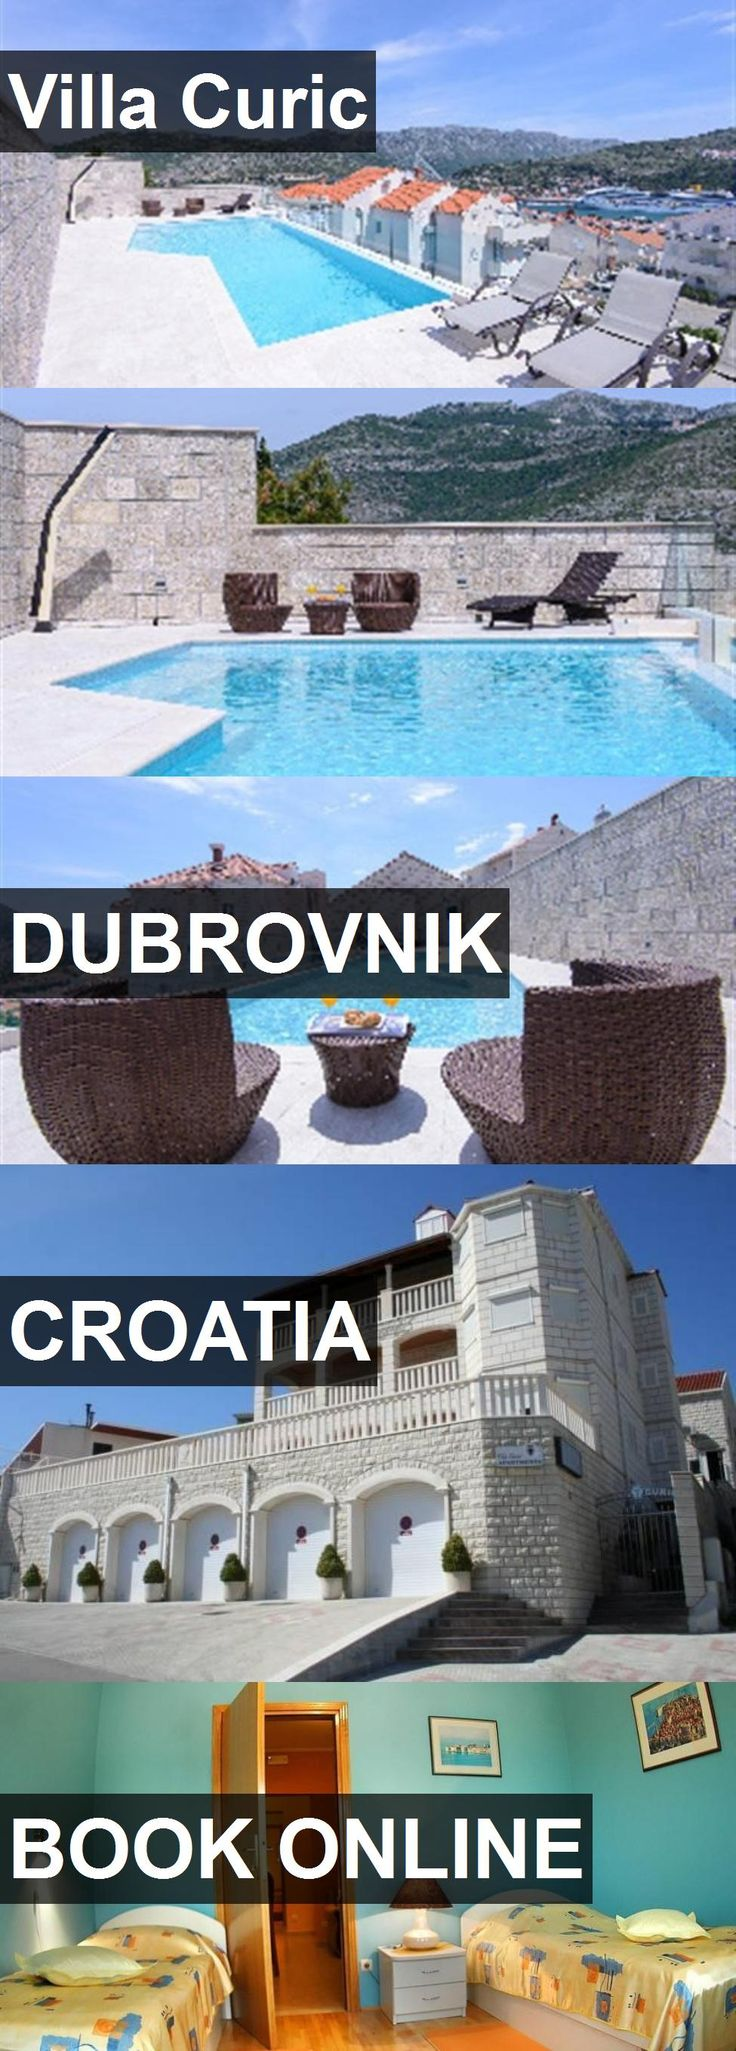 Hotel Villa Curic in Dubrovnik, Croatia. For more information, photos, reviews and best prices please follow the link. #Croatia #Dubrovnik #VillaCuric #hotel #travel #vacation